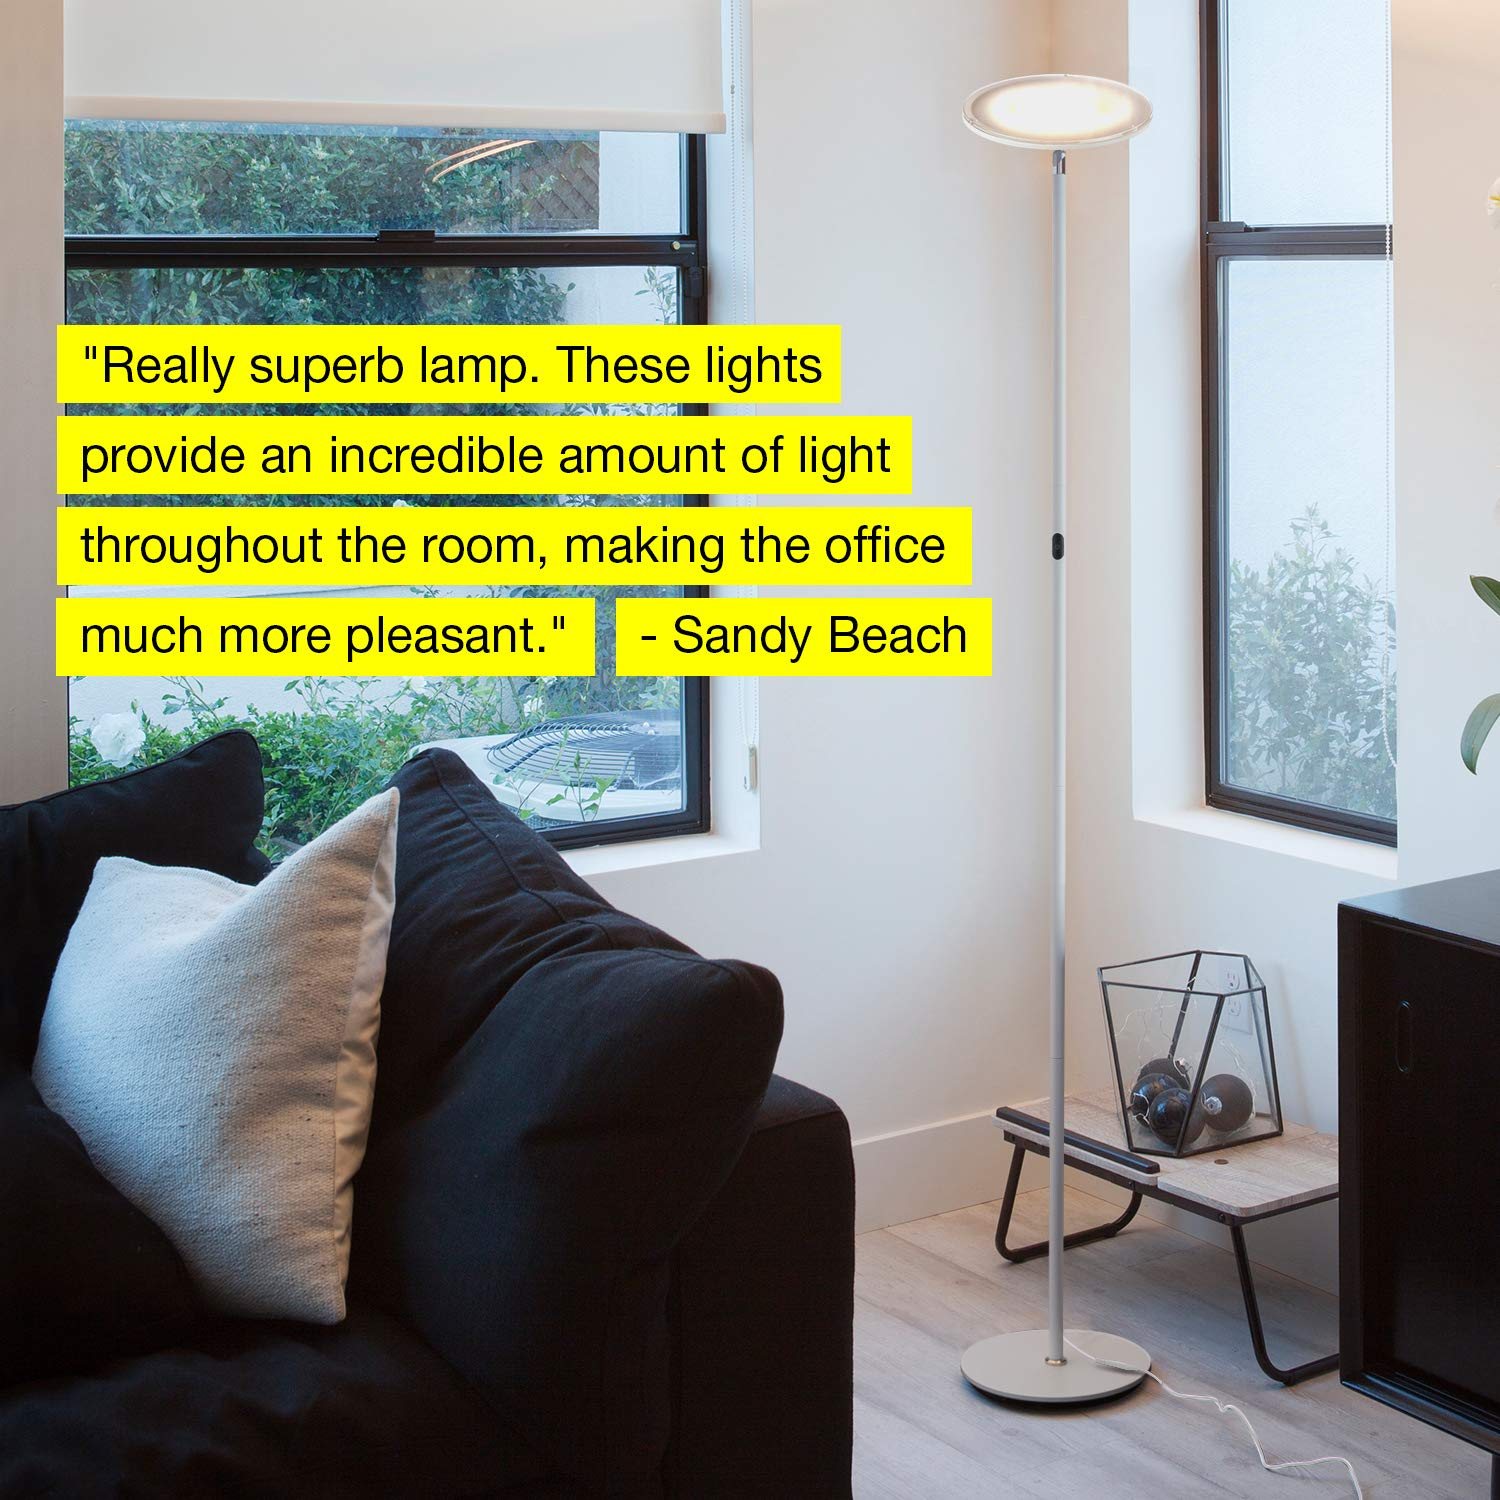 B01KMWCNBY Brightech Sky LED Torchiere Super Bright Floor Lamp - Contemporary, High Lumen Light for Living Rooms & Offices - Dimmable, Indoor Pole Uplight for Bedroom Reading - White 51UcdAApynL